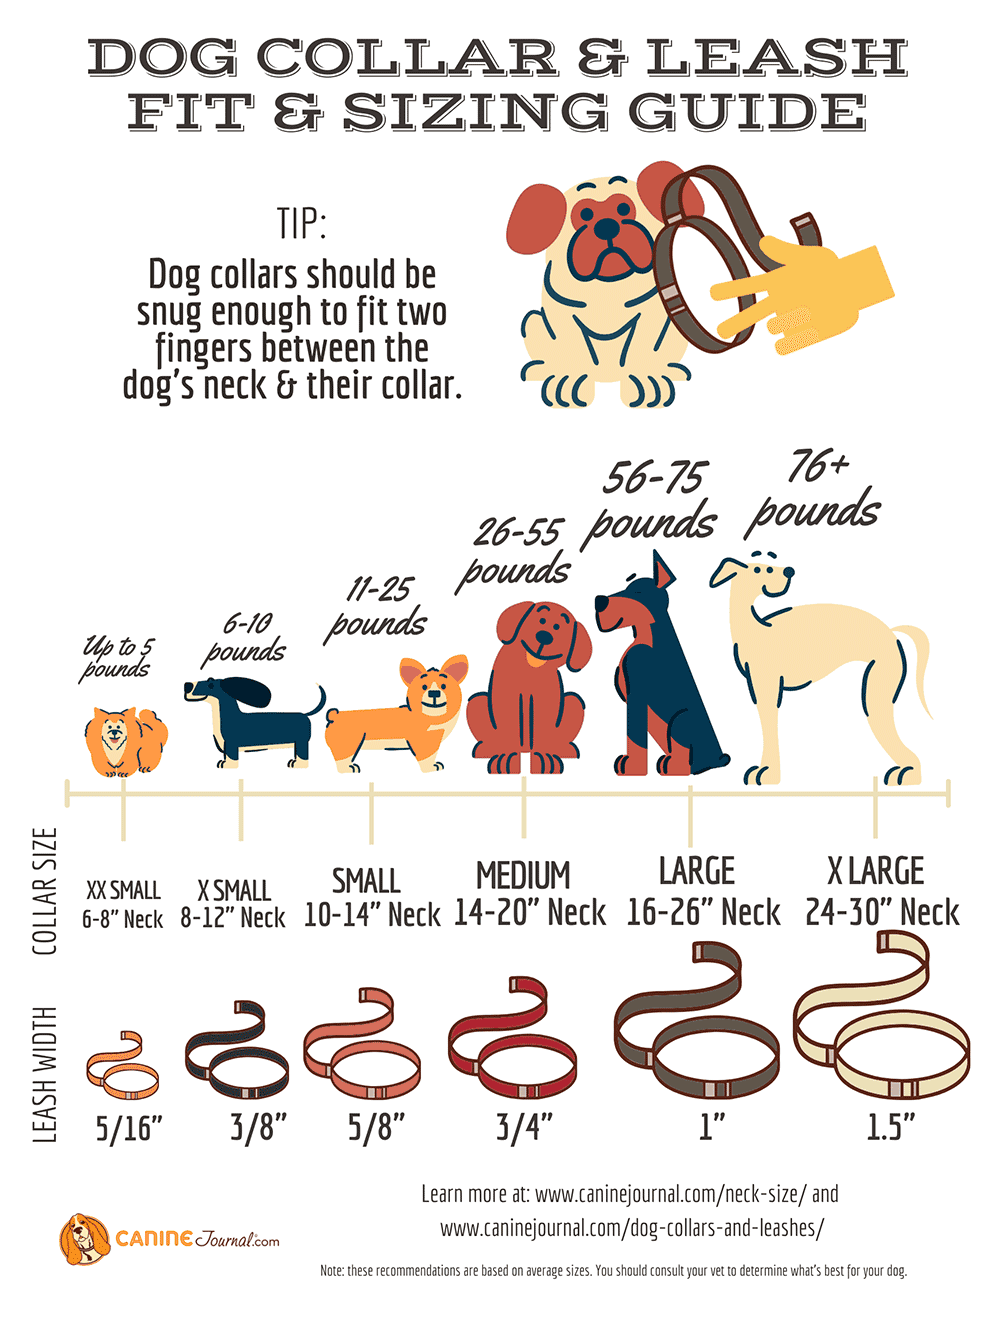 Dog Collar And Leash Size Guide Infographic